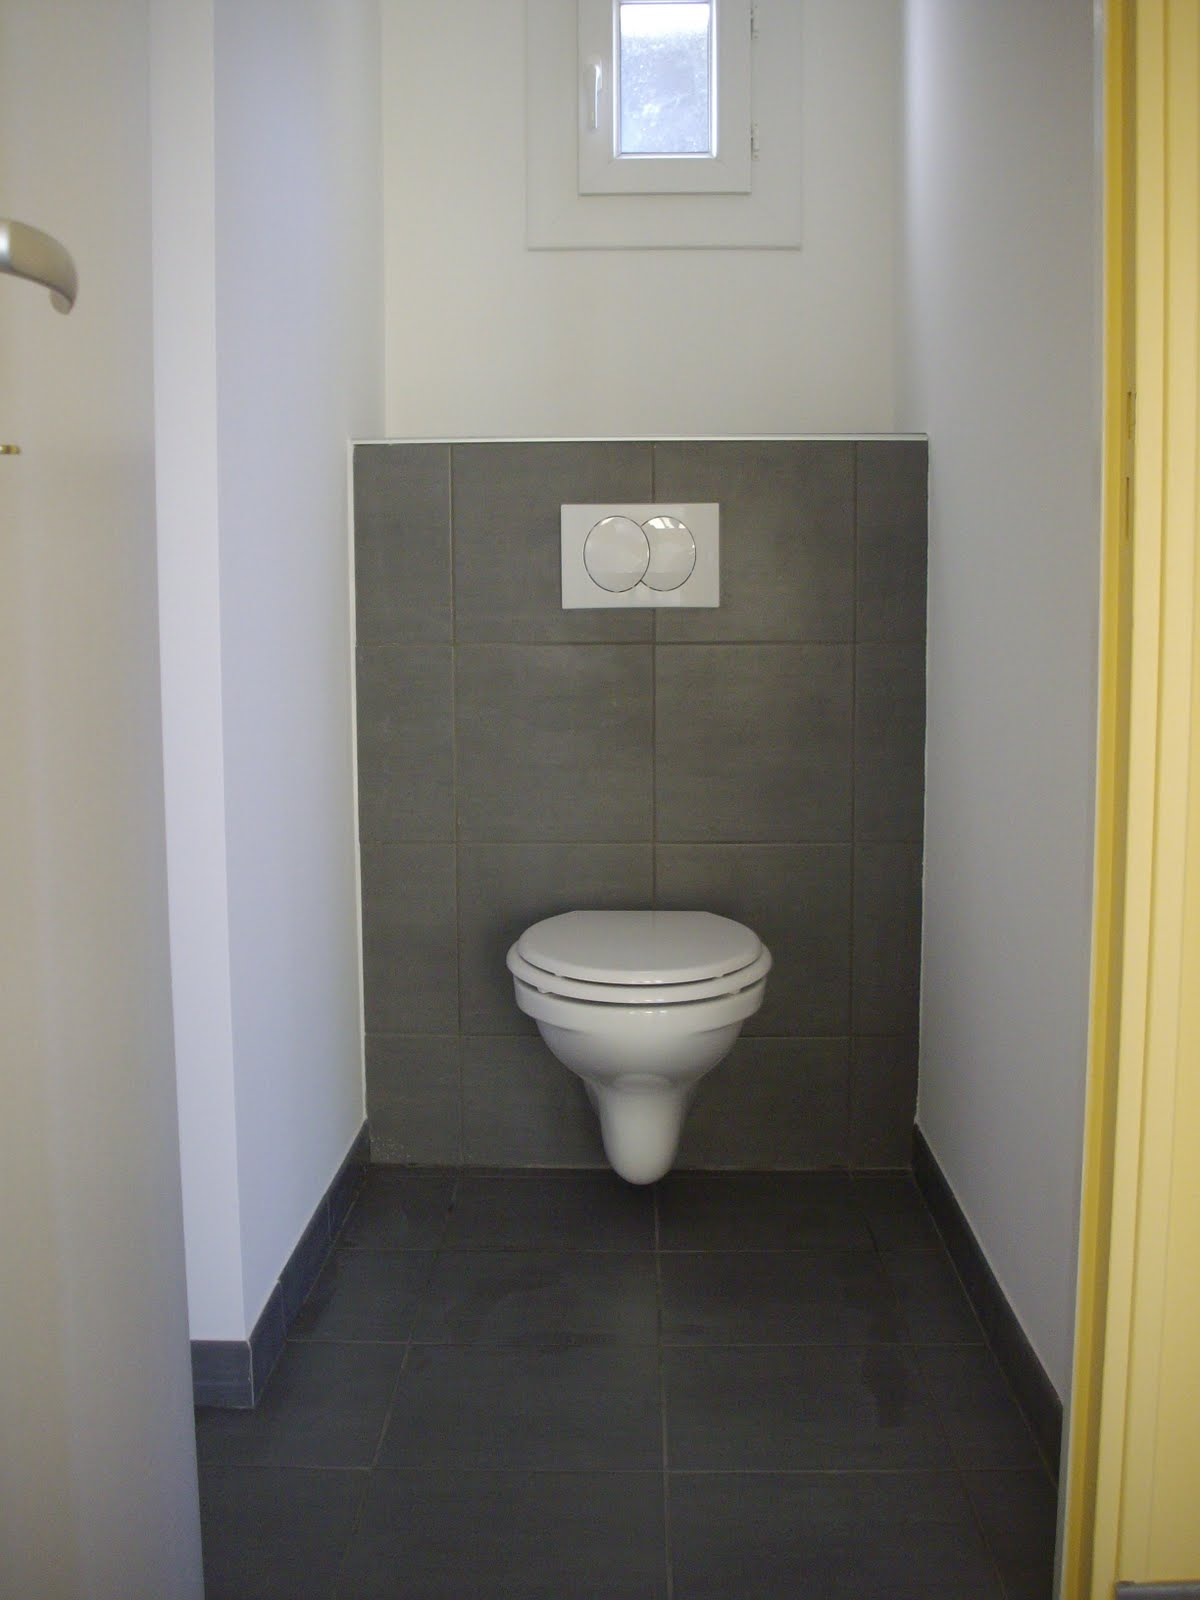 Amenagement Toilettes - Maison Design - Edfos.com